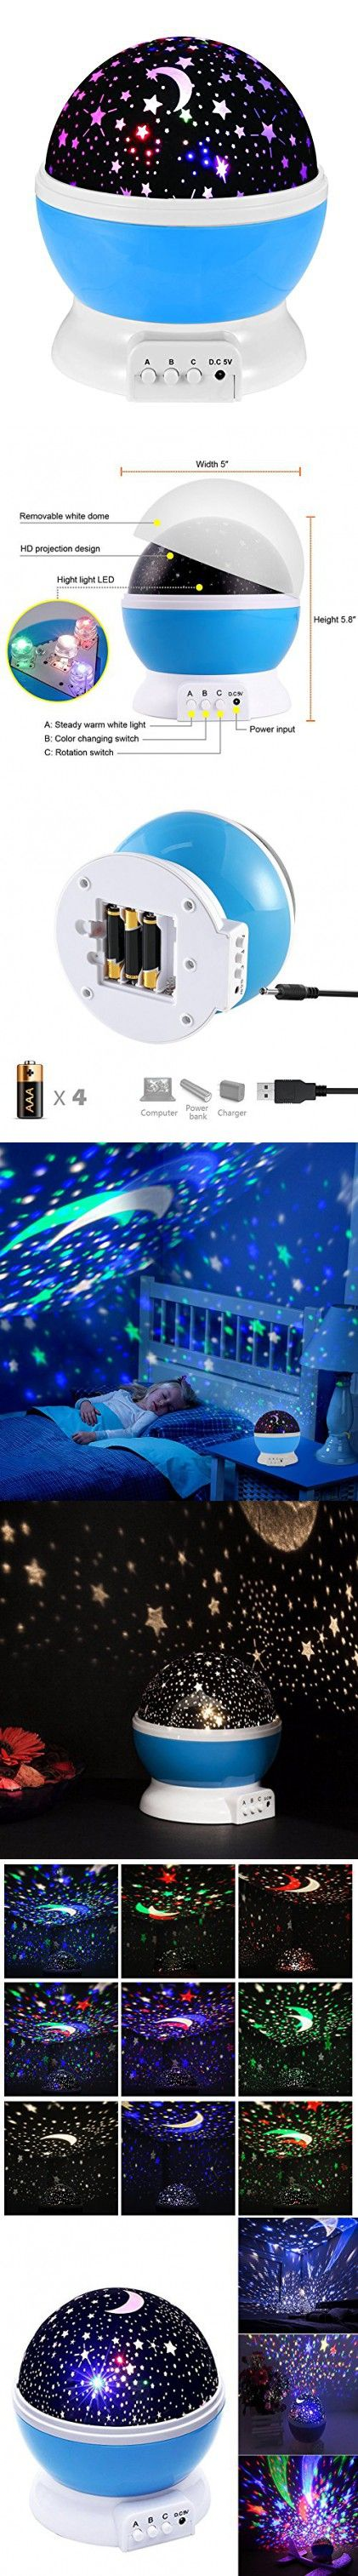 How to make a starry night ceiling in the bedroom